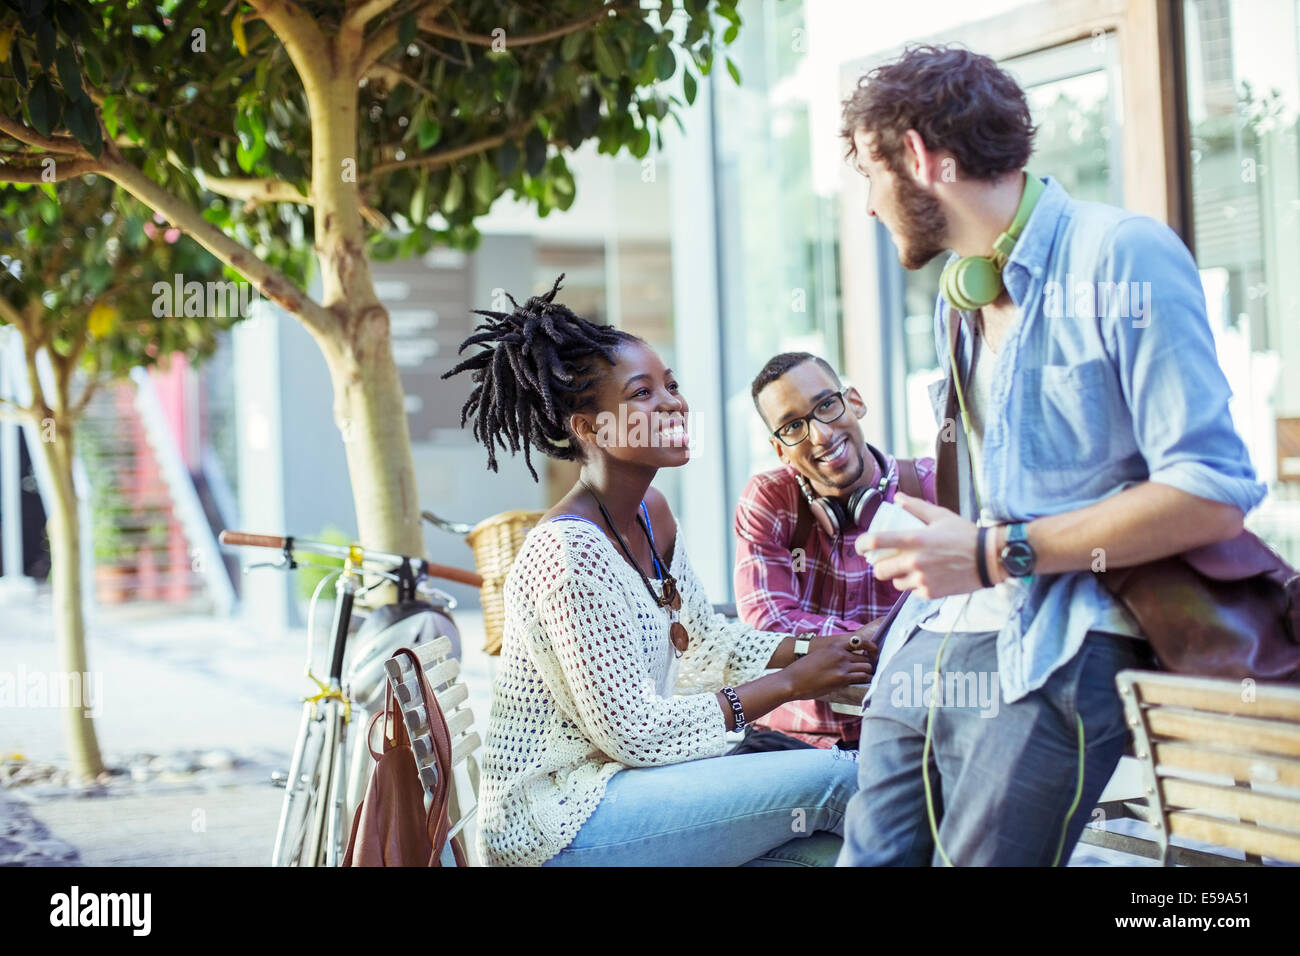 Friends talking on city street - Stock Image